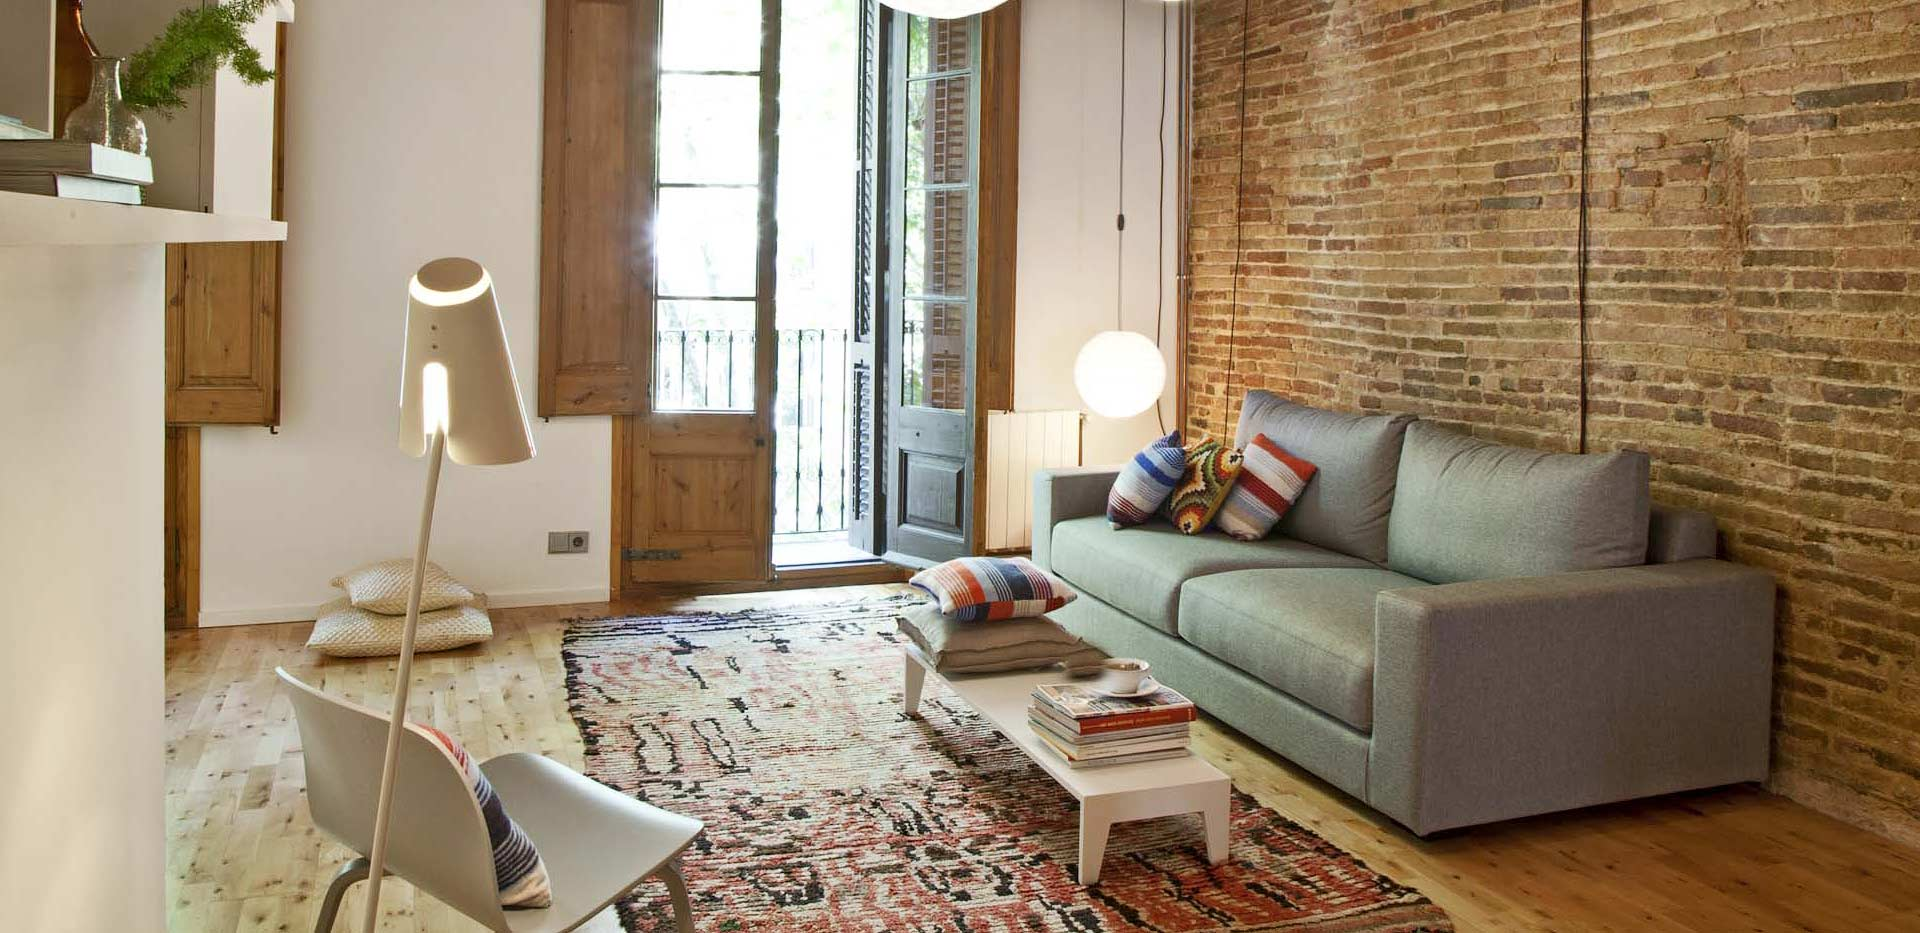 Eixample Apartment in Barcelona, Spain | Holiday apartments